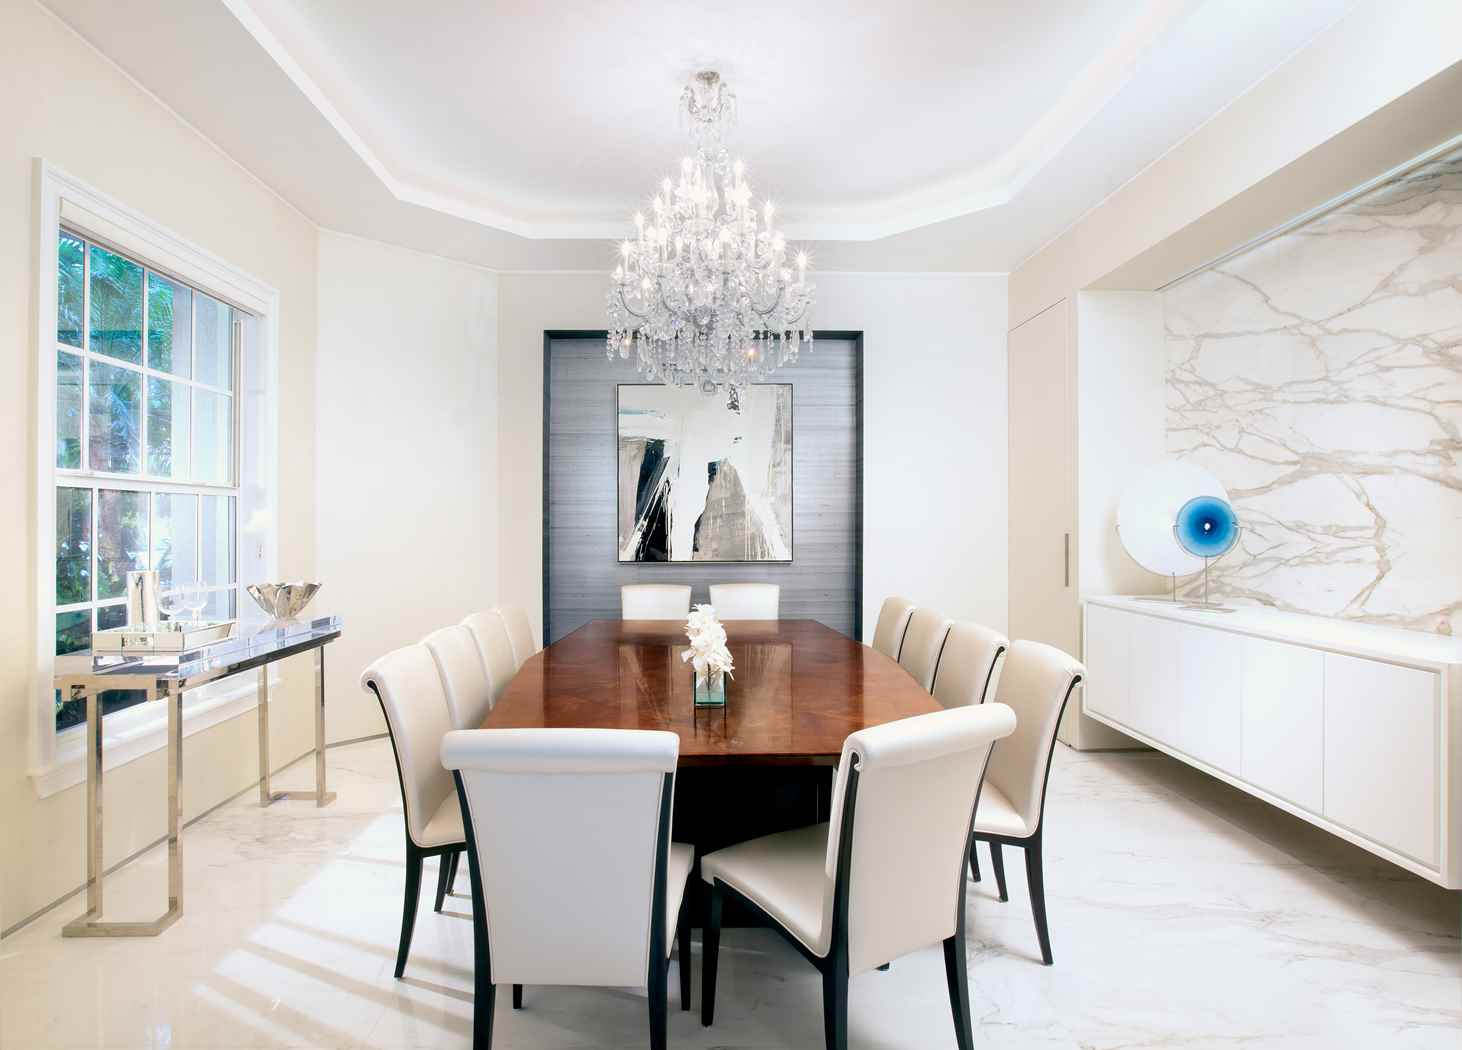 Simple Dining Room Decor For A Transitional Season: Residential Interior Design From